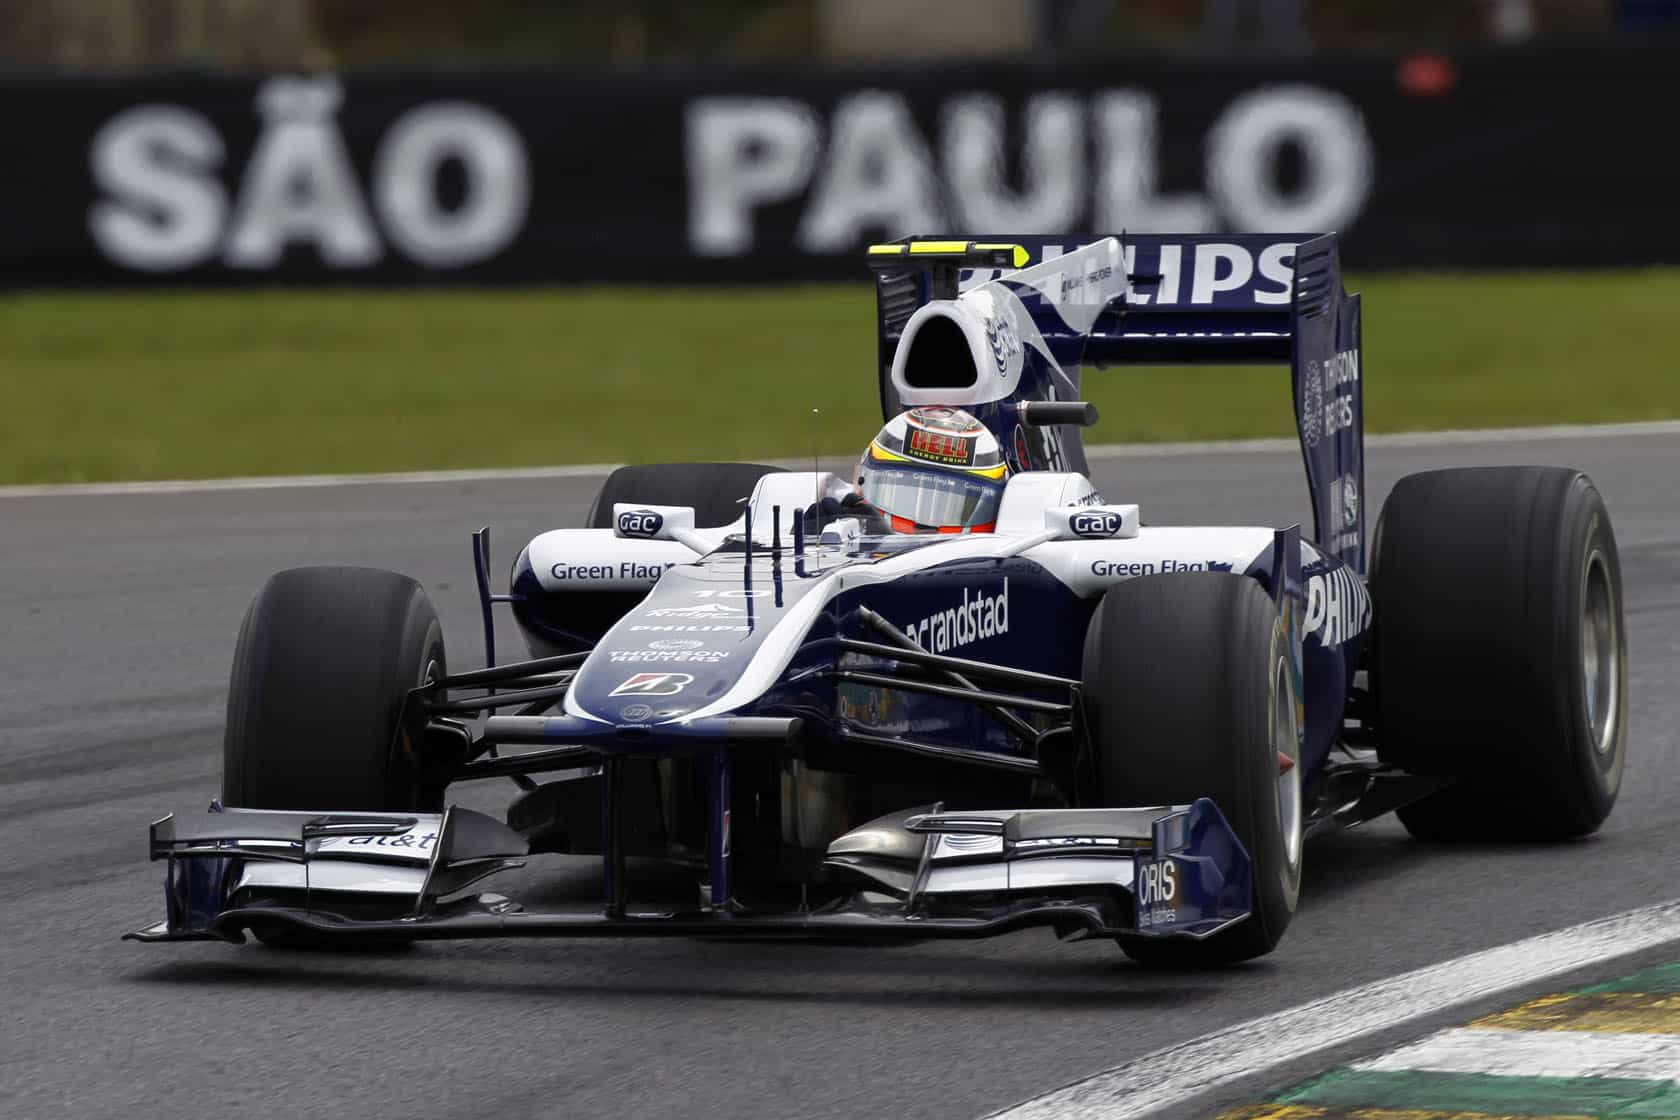 Hulkenberg-Brazil-2010-Interlagod-pole-position-Photo-Williams